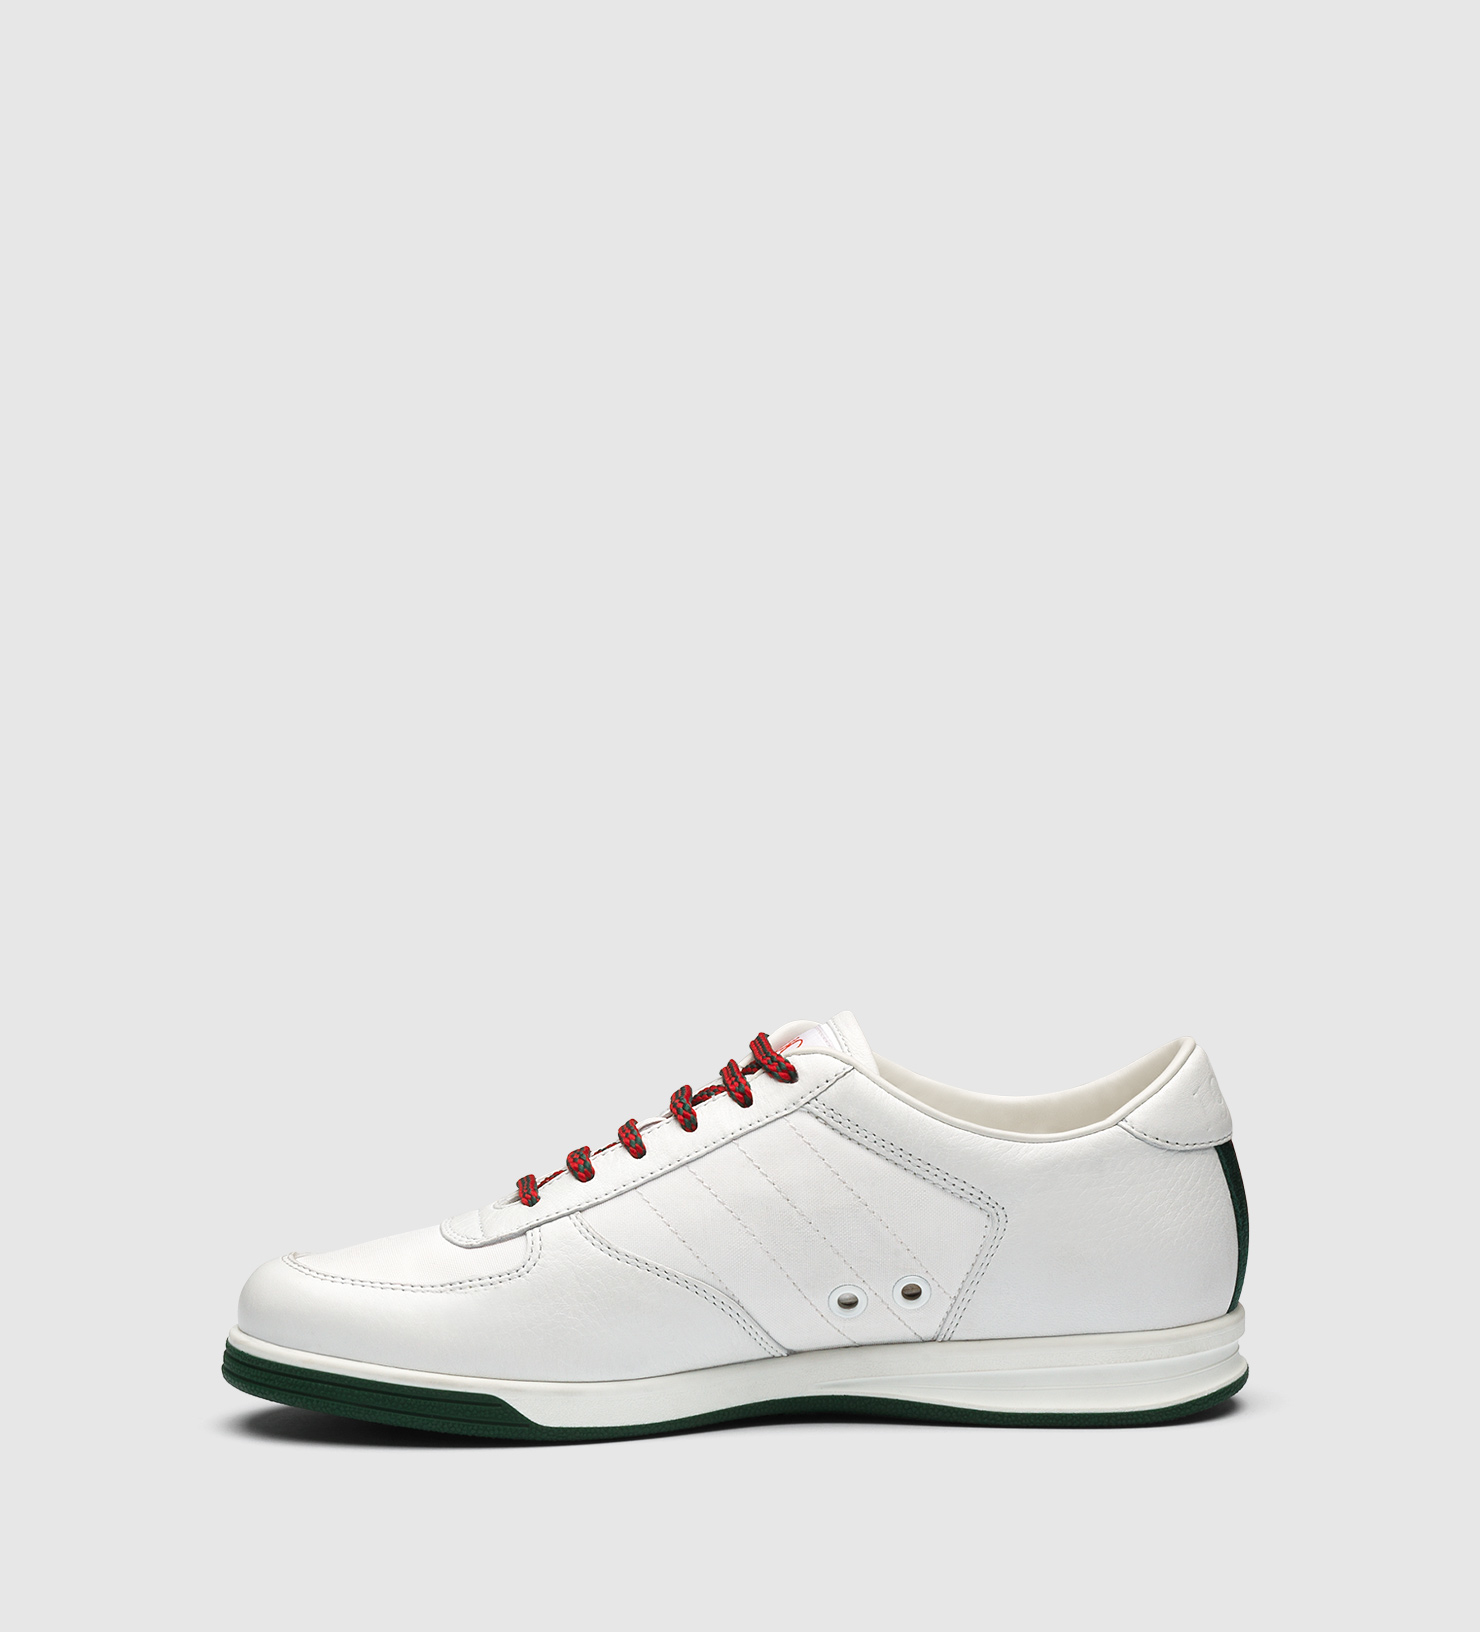 a2a8ec99ba2 Lyst - Gucci 1984 Low Top Sneaker In Leather in White